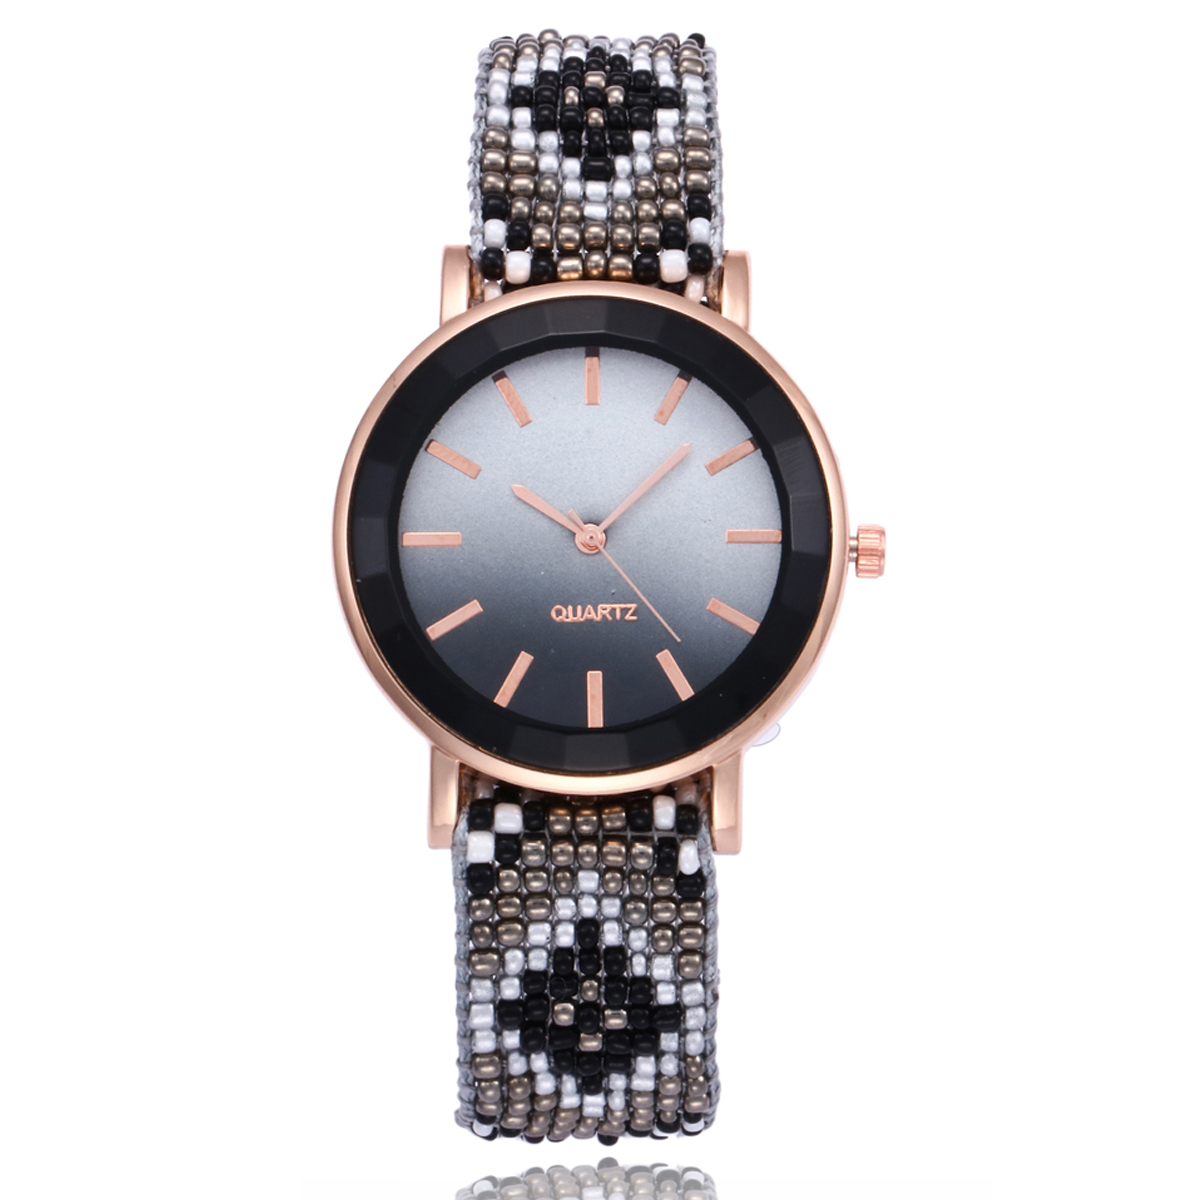 Femmes casual color bracelet montre shellhard dames boh me tiss tress bracelet analogique robe montre bracelet